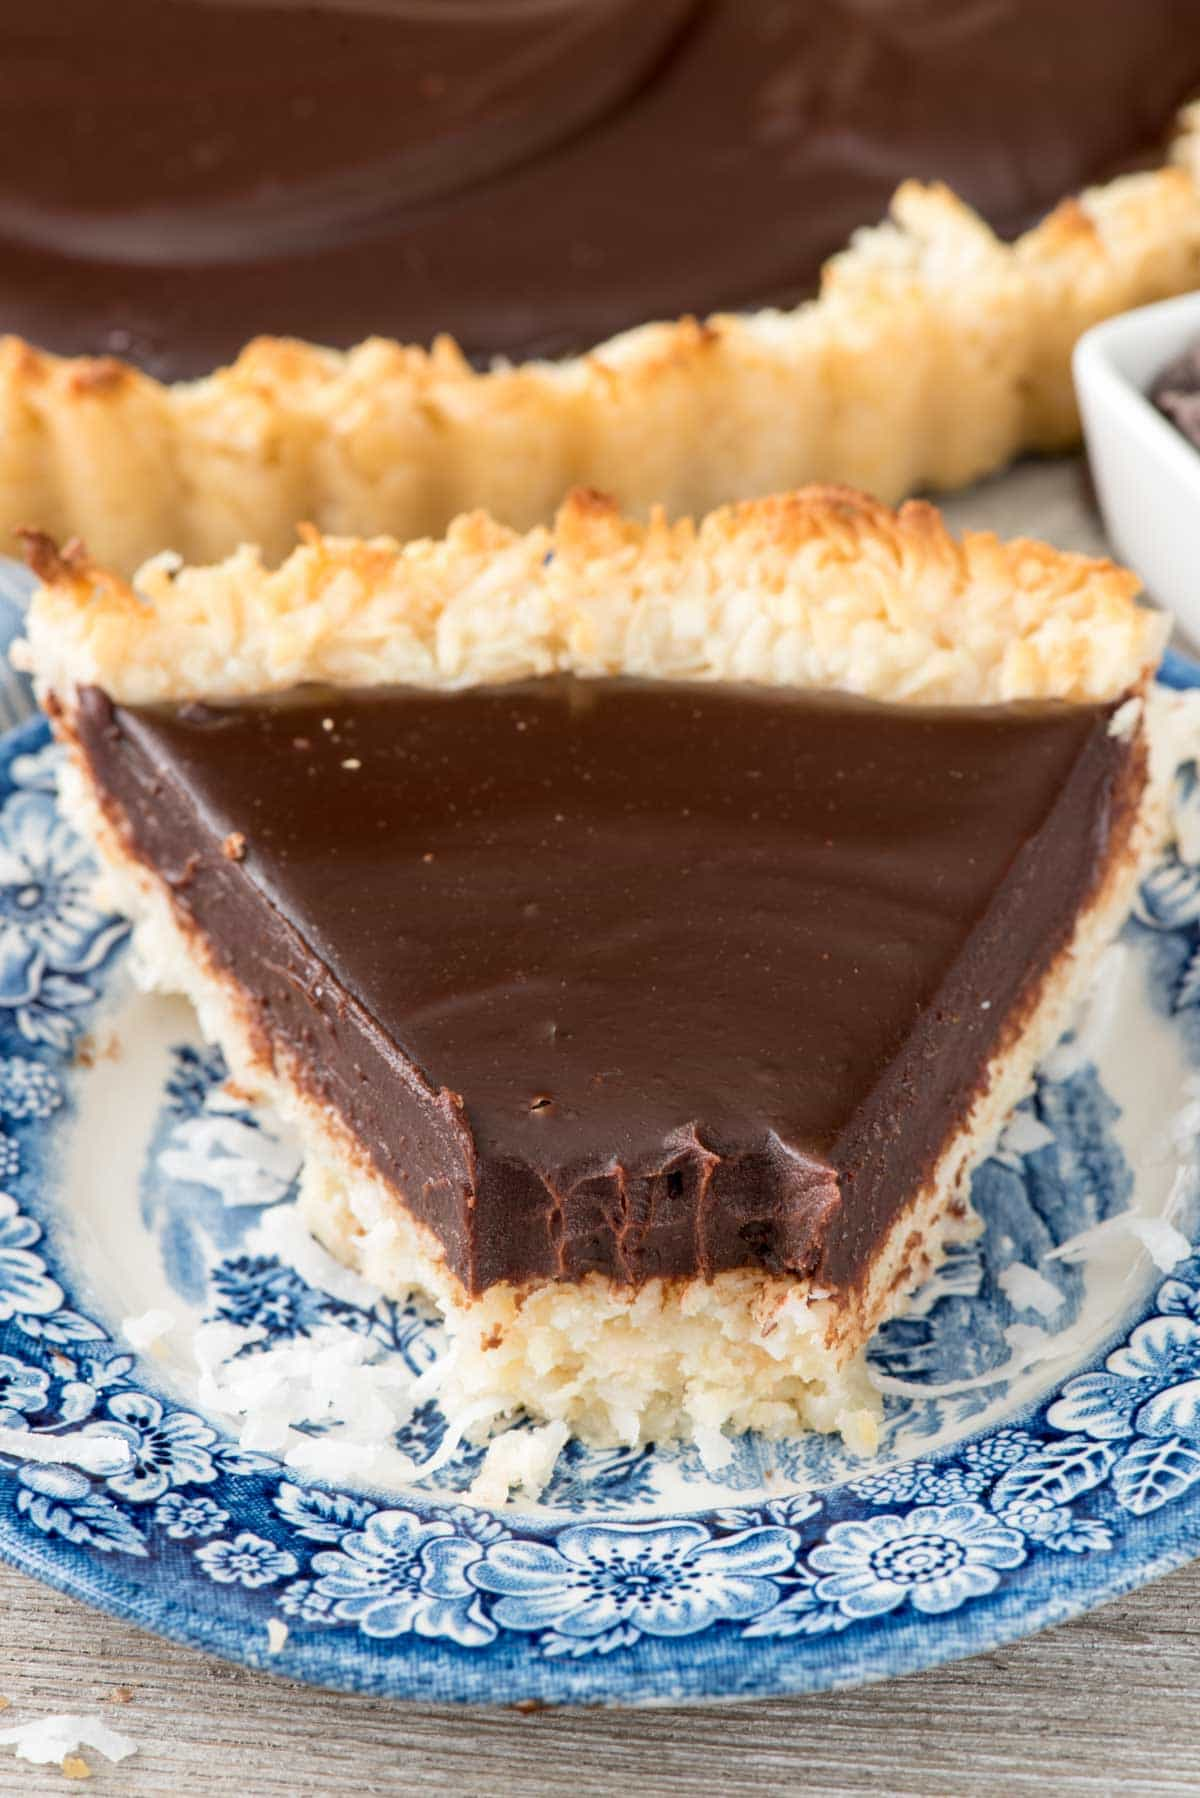 Chocolate Macaroon Pie - this EASY macaroon recipe gets baked into a pie crust and filled with ganache. Betcha can't eat just one bite!